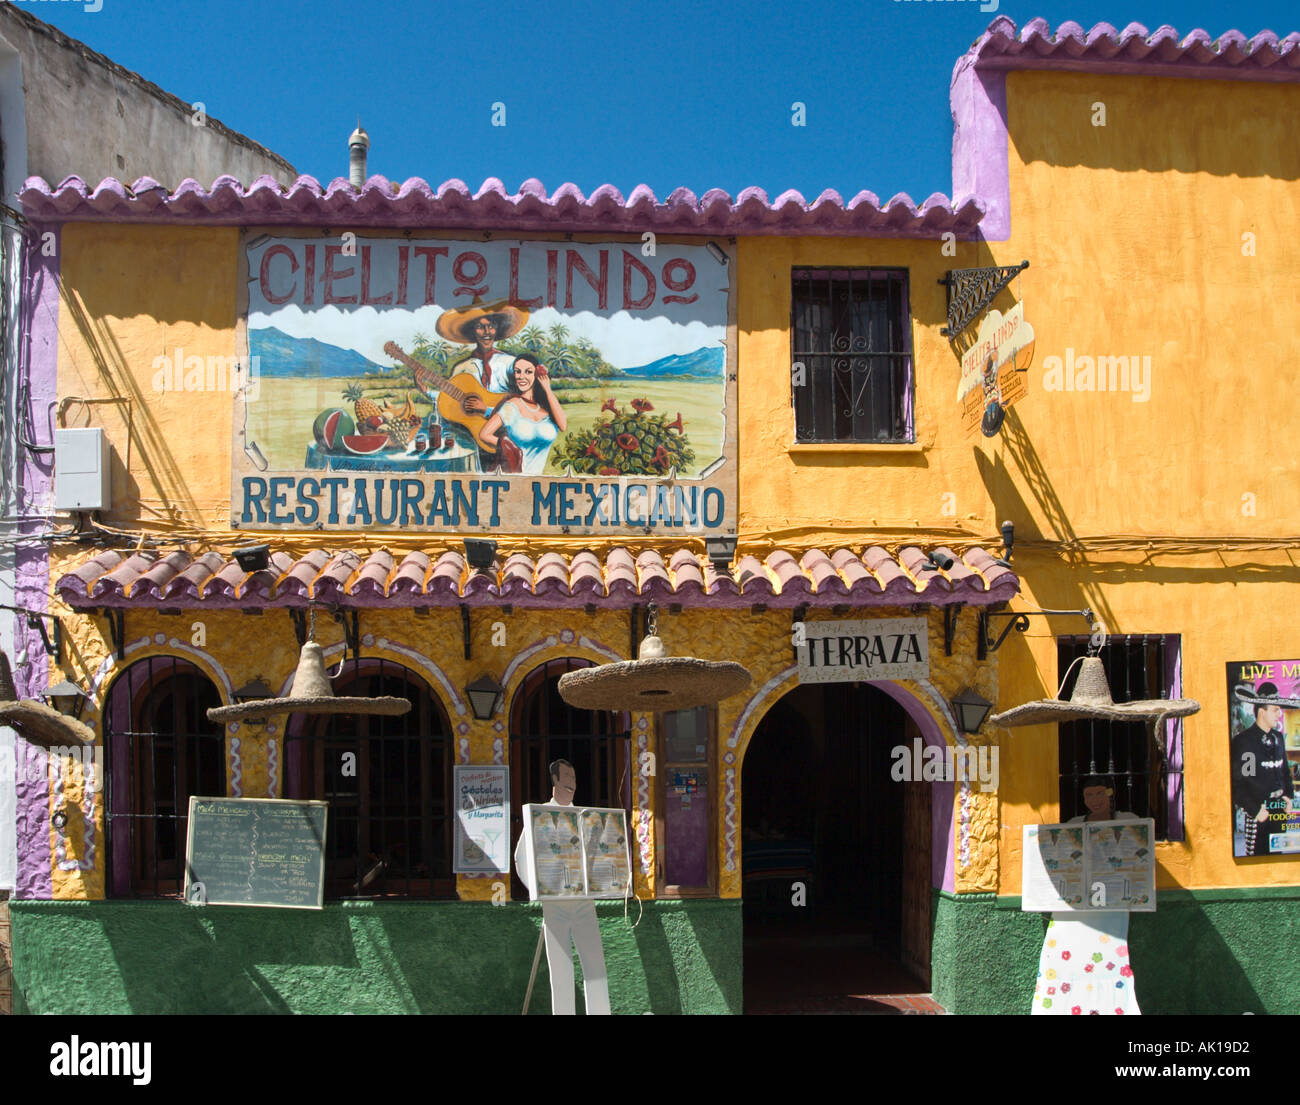 Mexican Restaurant In The Old Town Nerja Costa Del Sol